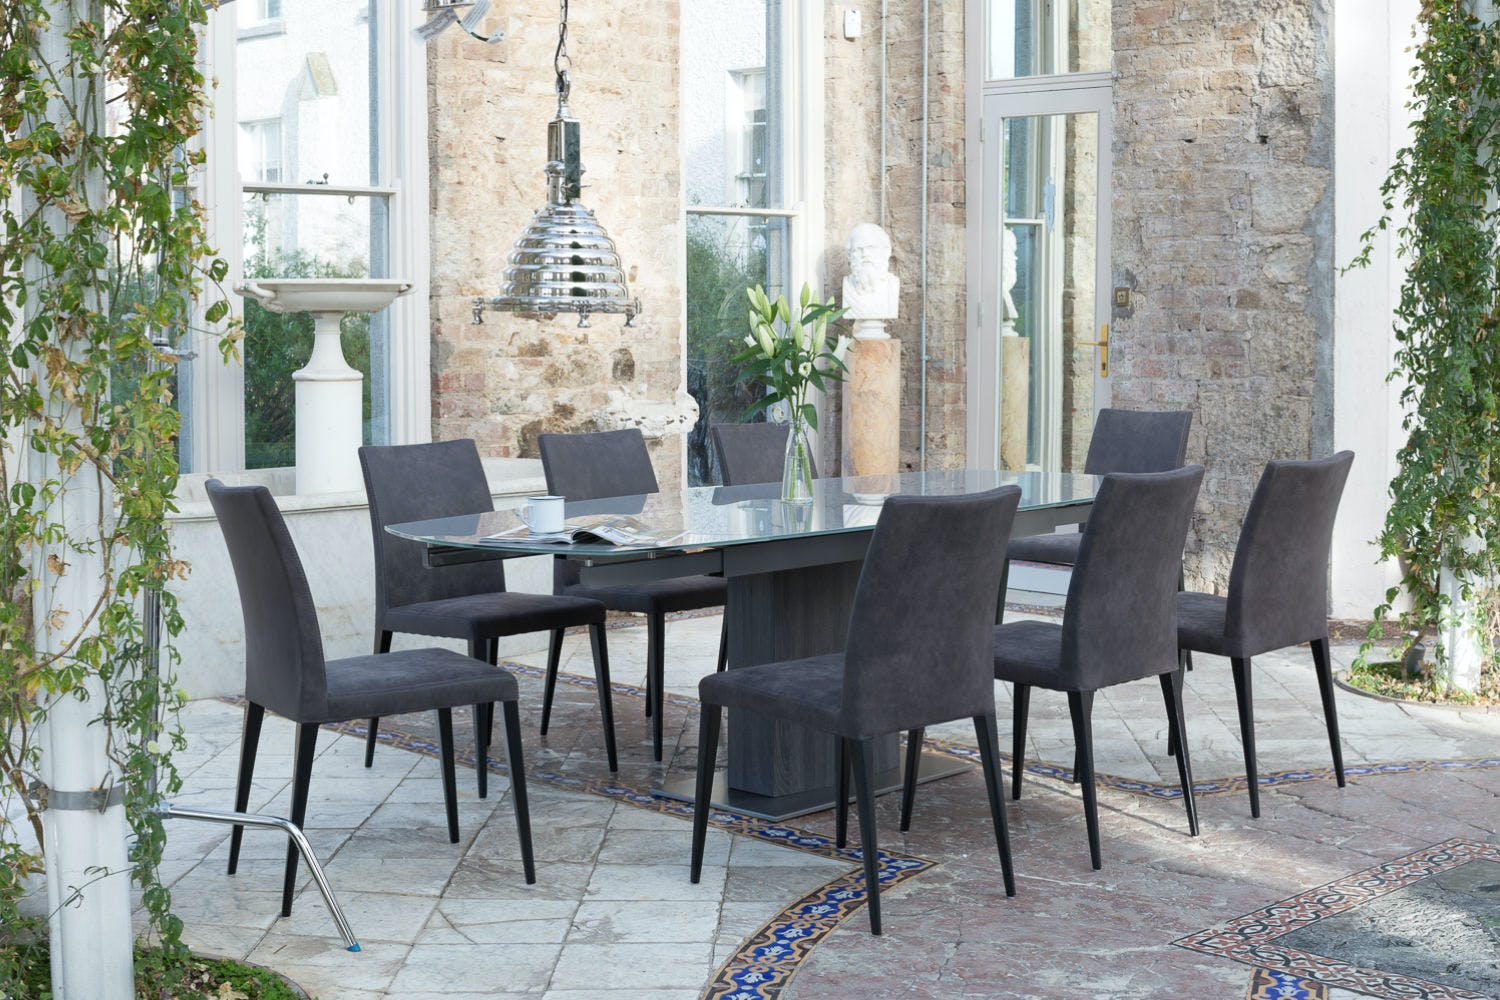 Lucci dark 9 piece dining set high calvino dining chairs for High chair dining set